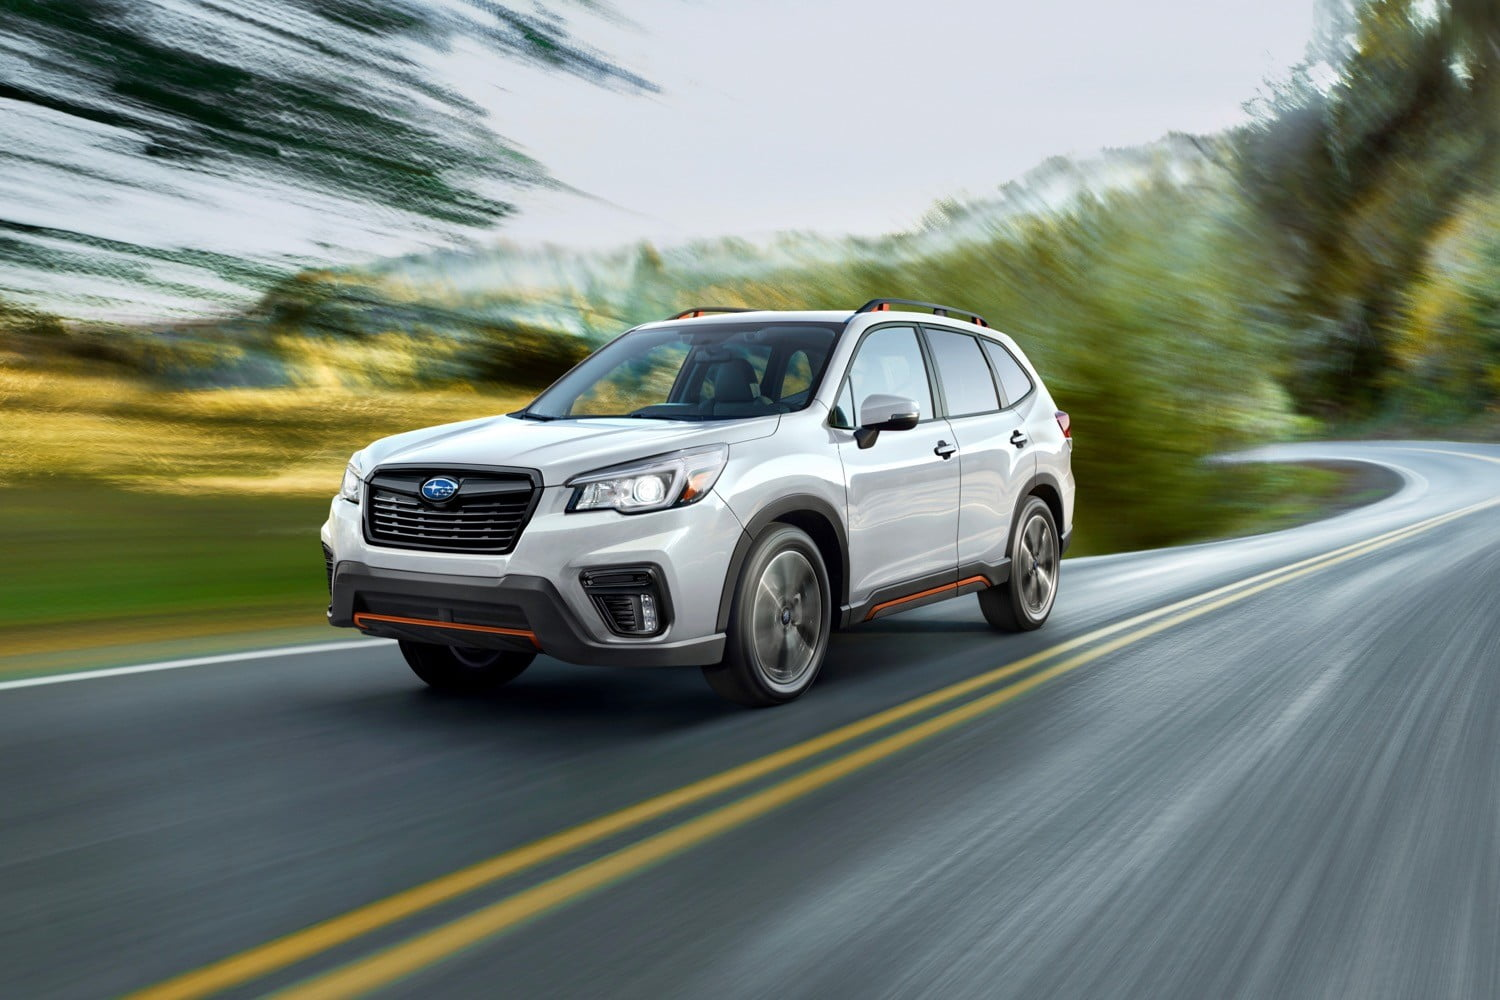 2019 subaru forester crossover priced starting at 25 270 digital trends. Black Bedroom Furniture Sets. Home Design Ideas